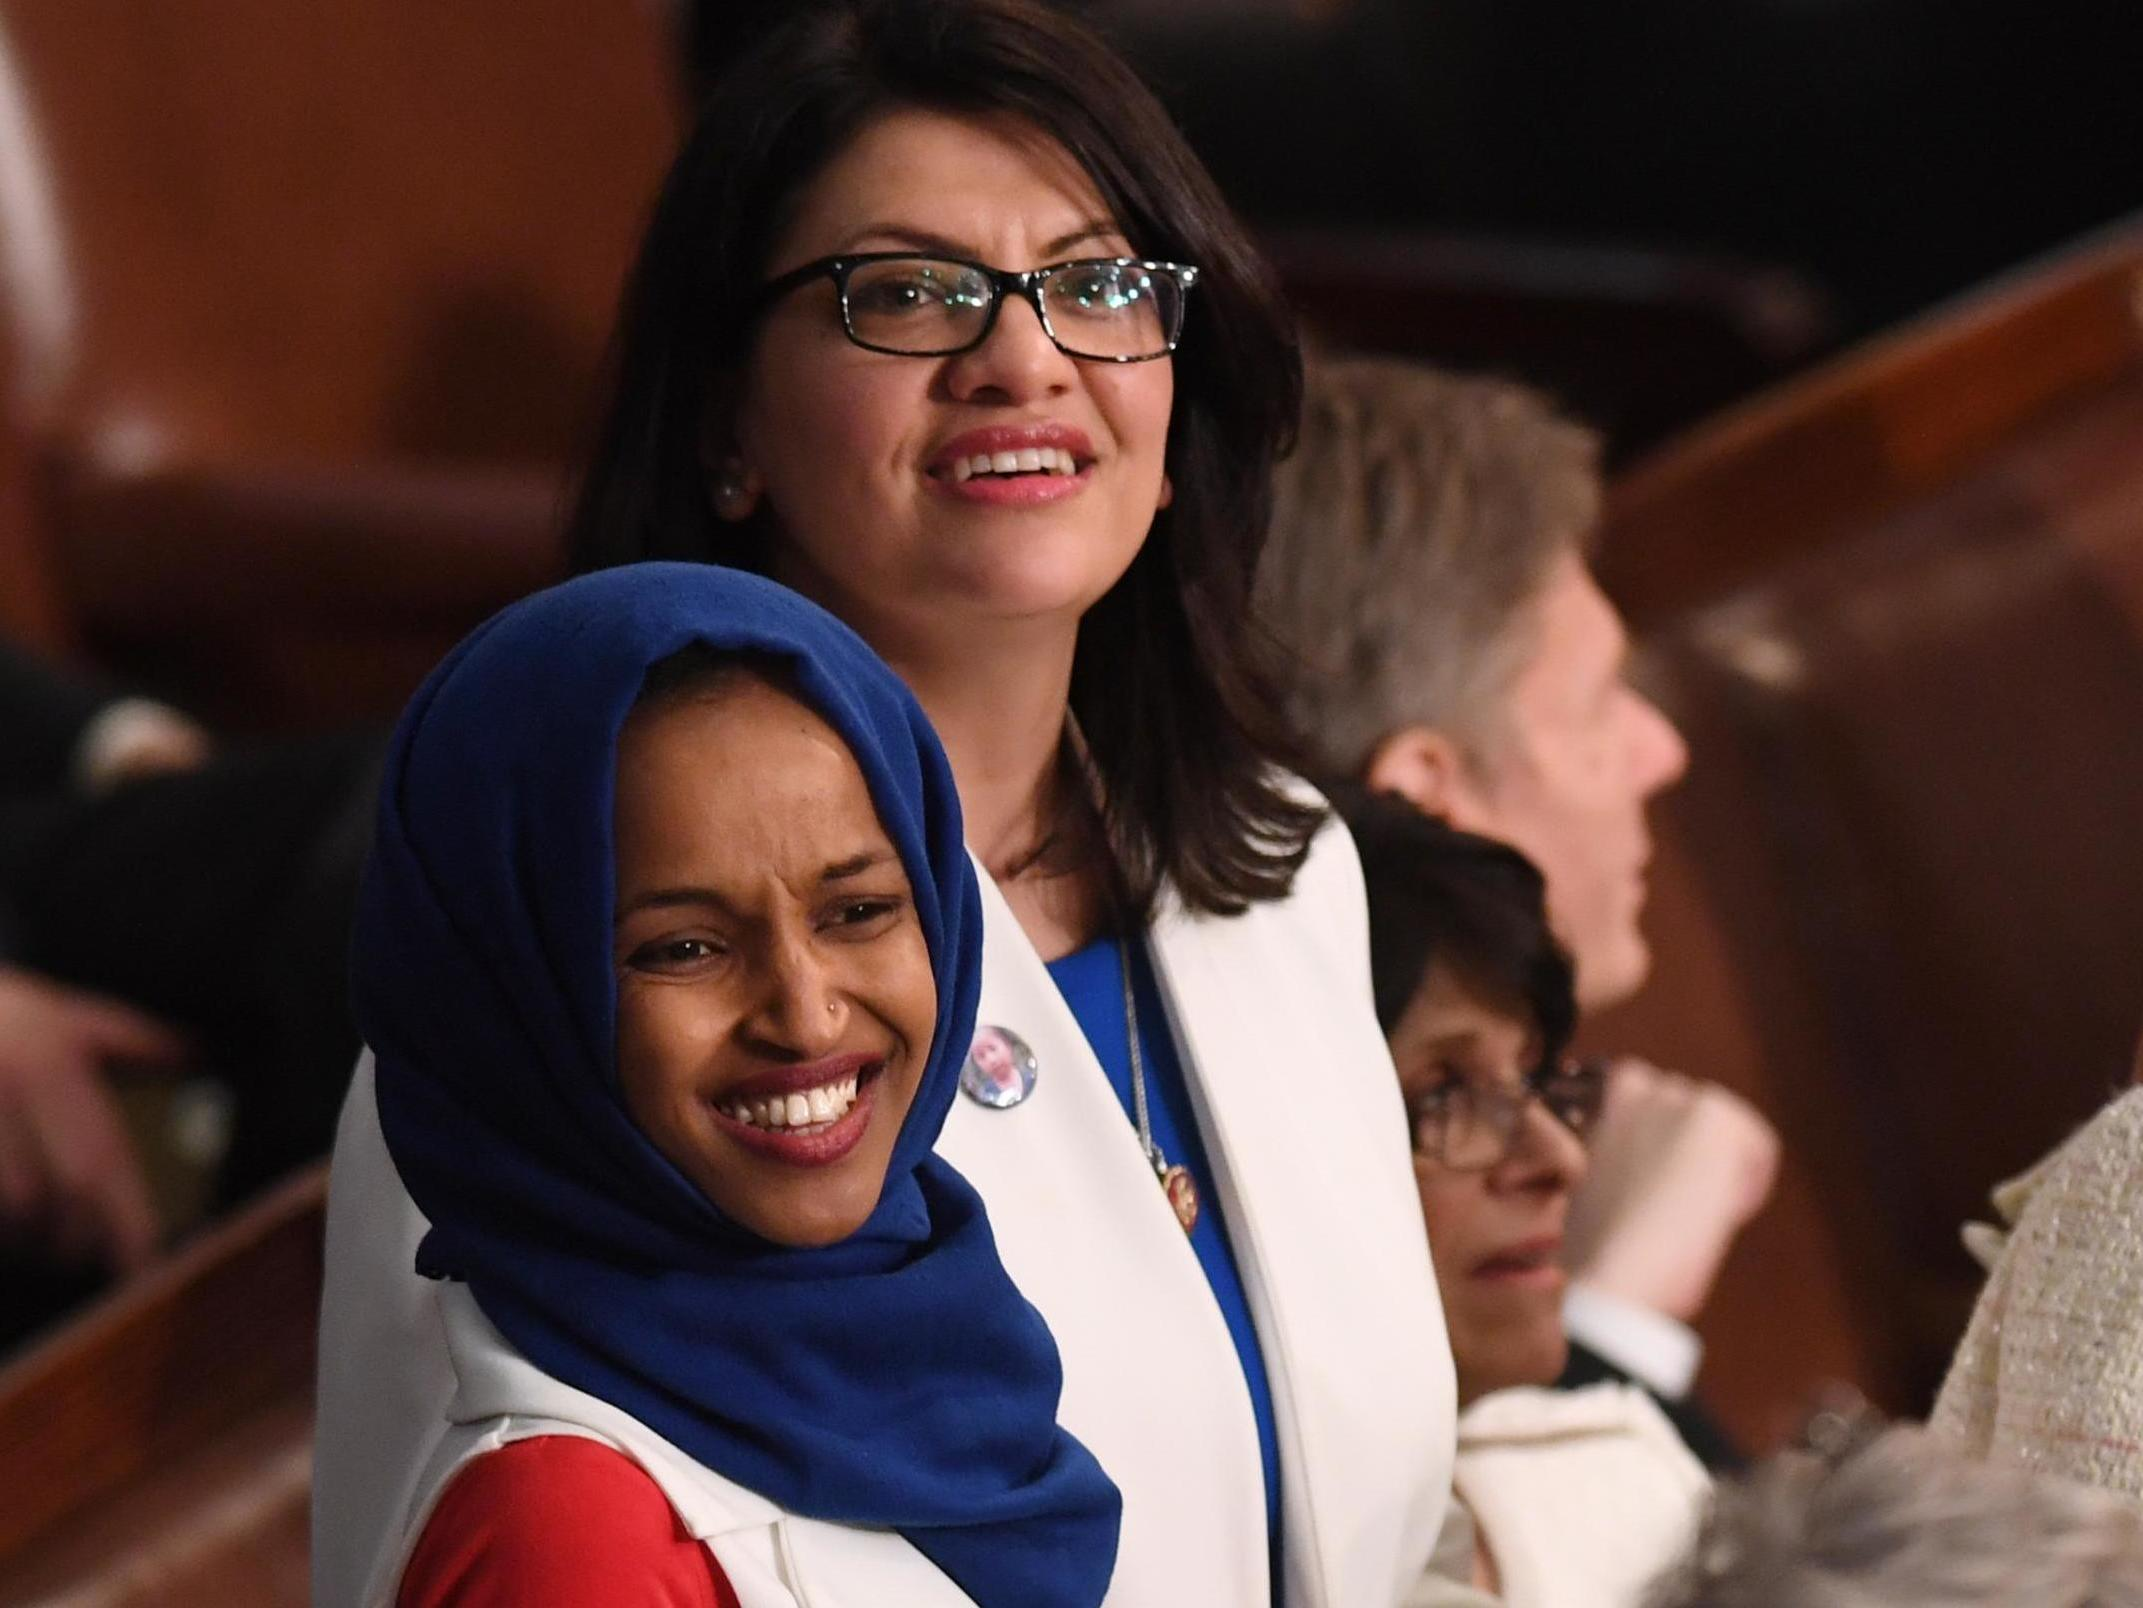 Trump impeachment: Democrats Ilhan Omar and Rashida Tlaib sign pledge to oust president